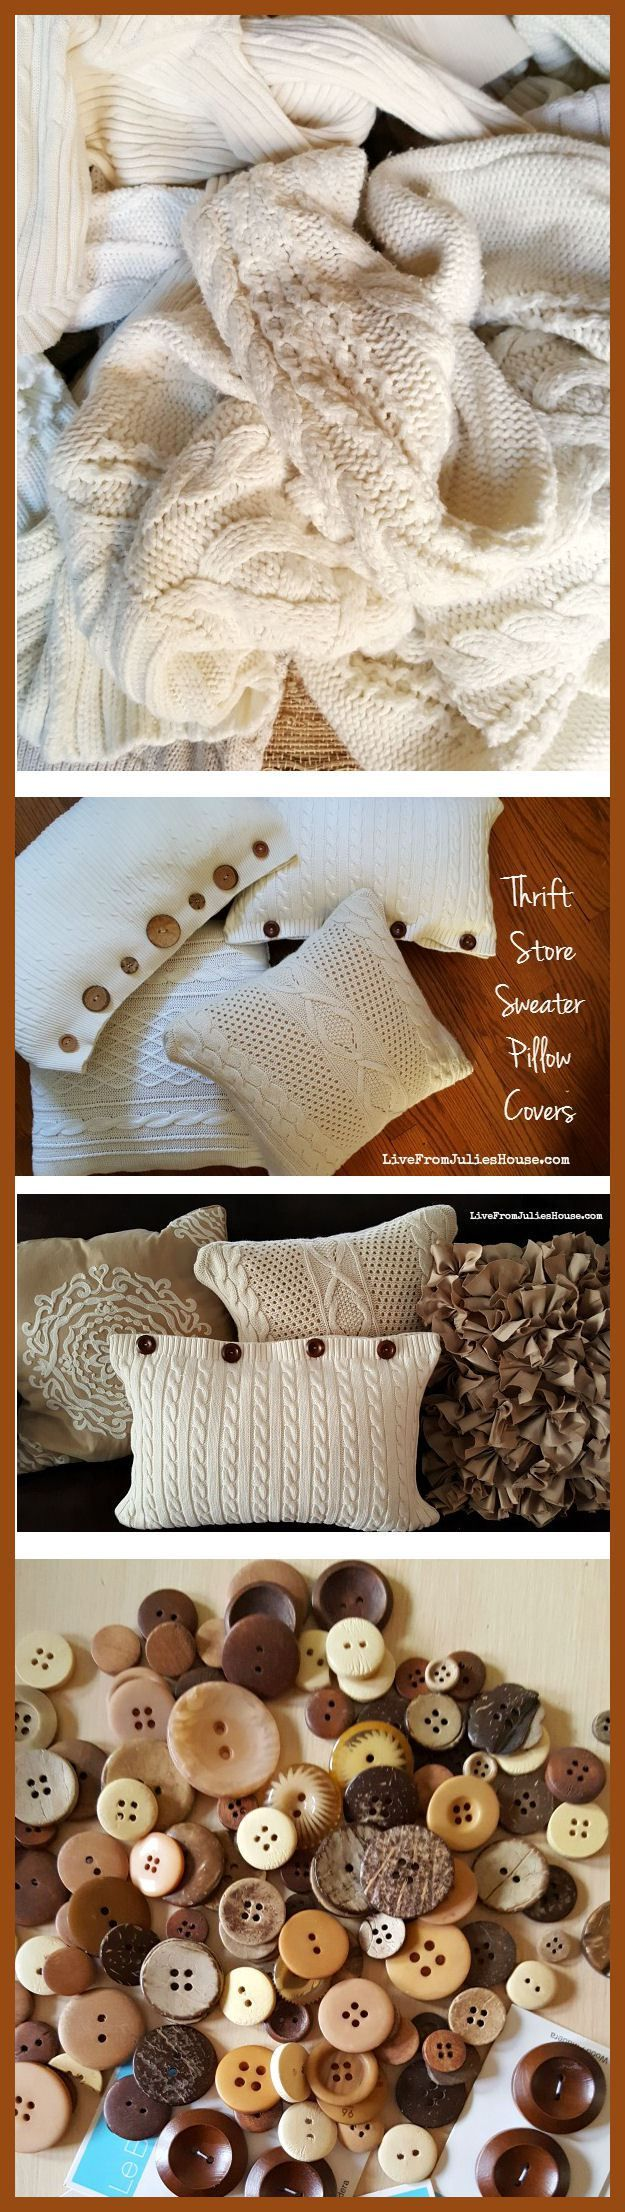 thrift store sweater pillow tutorial sweater pillow pillows and